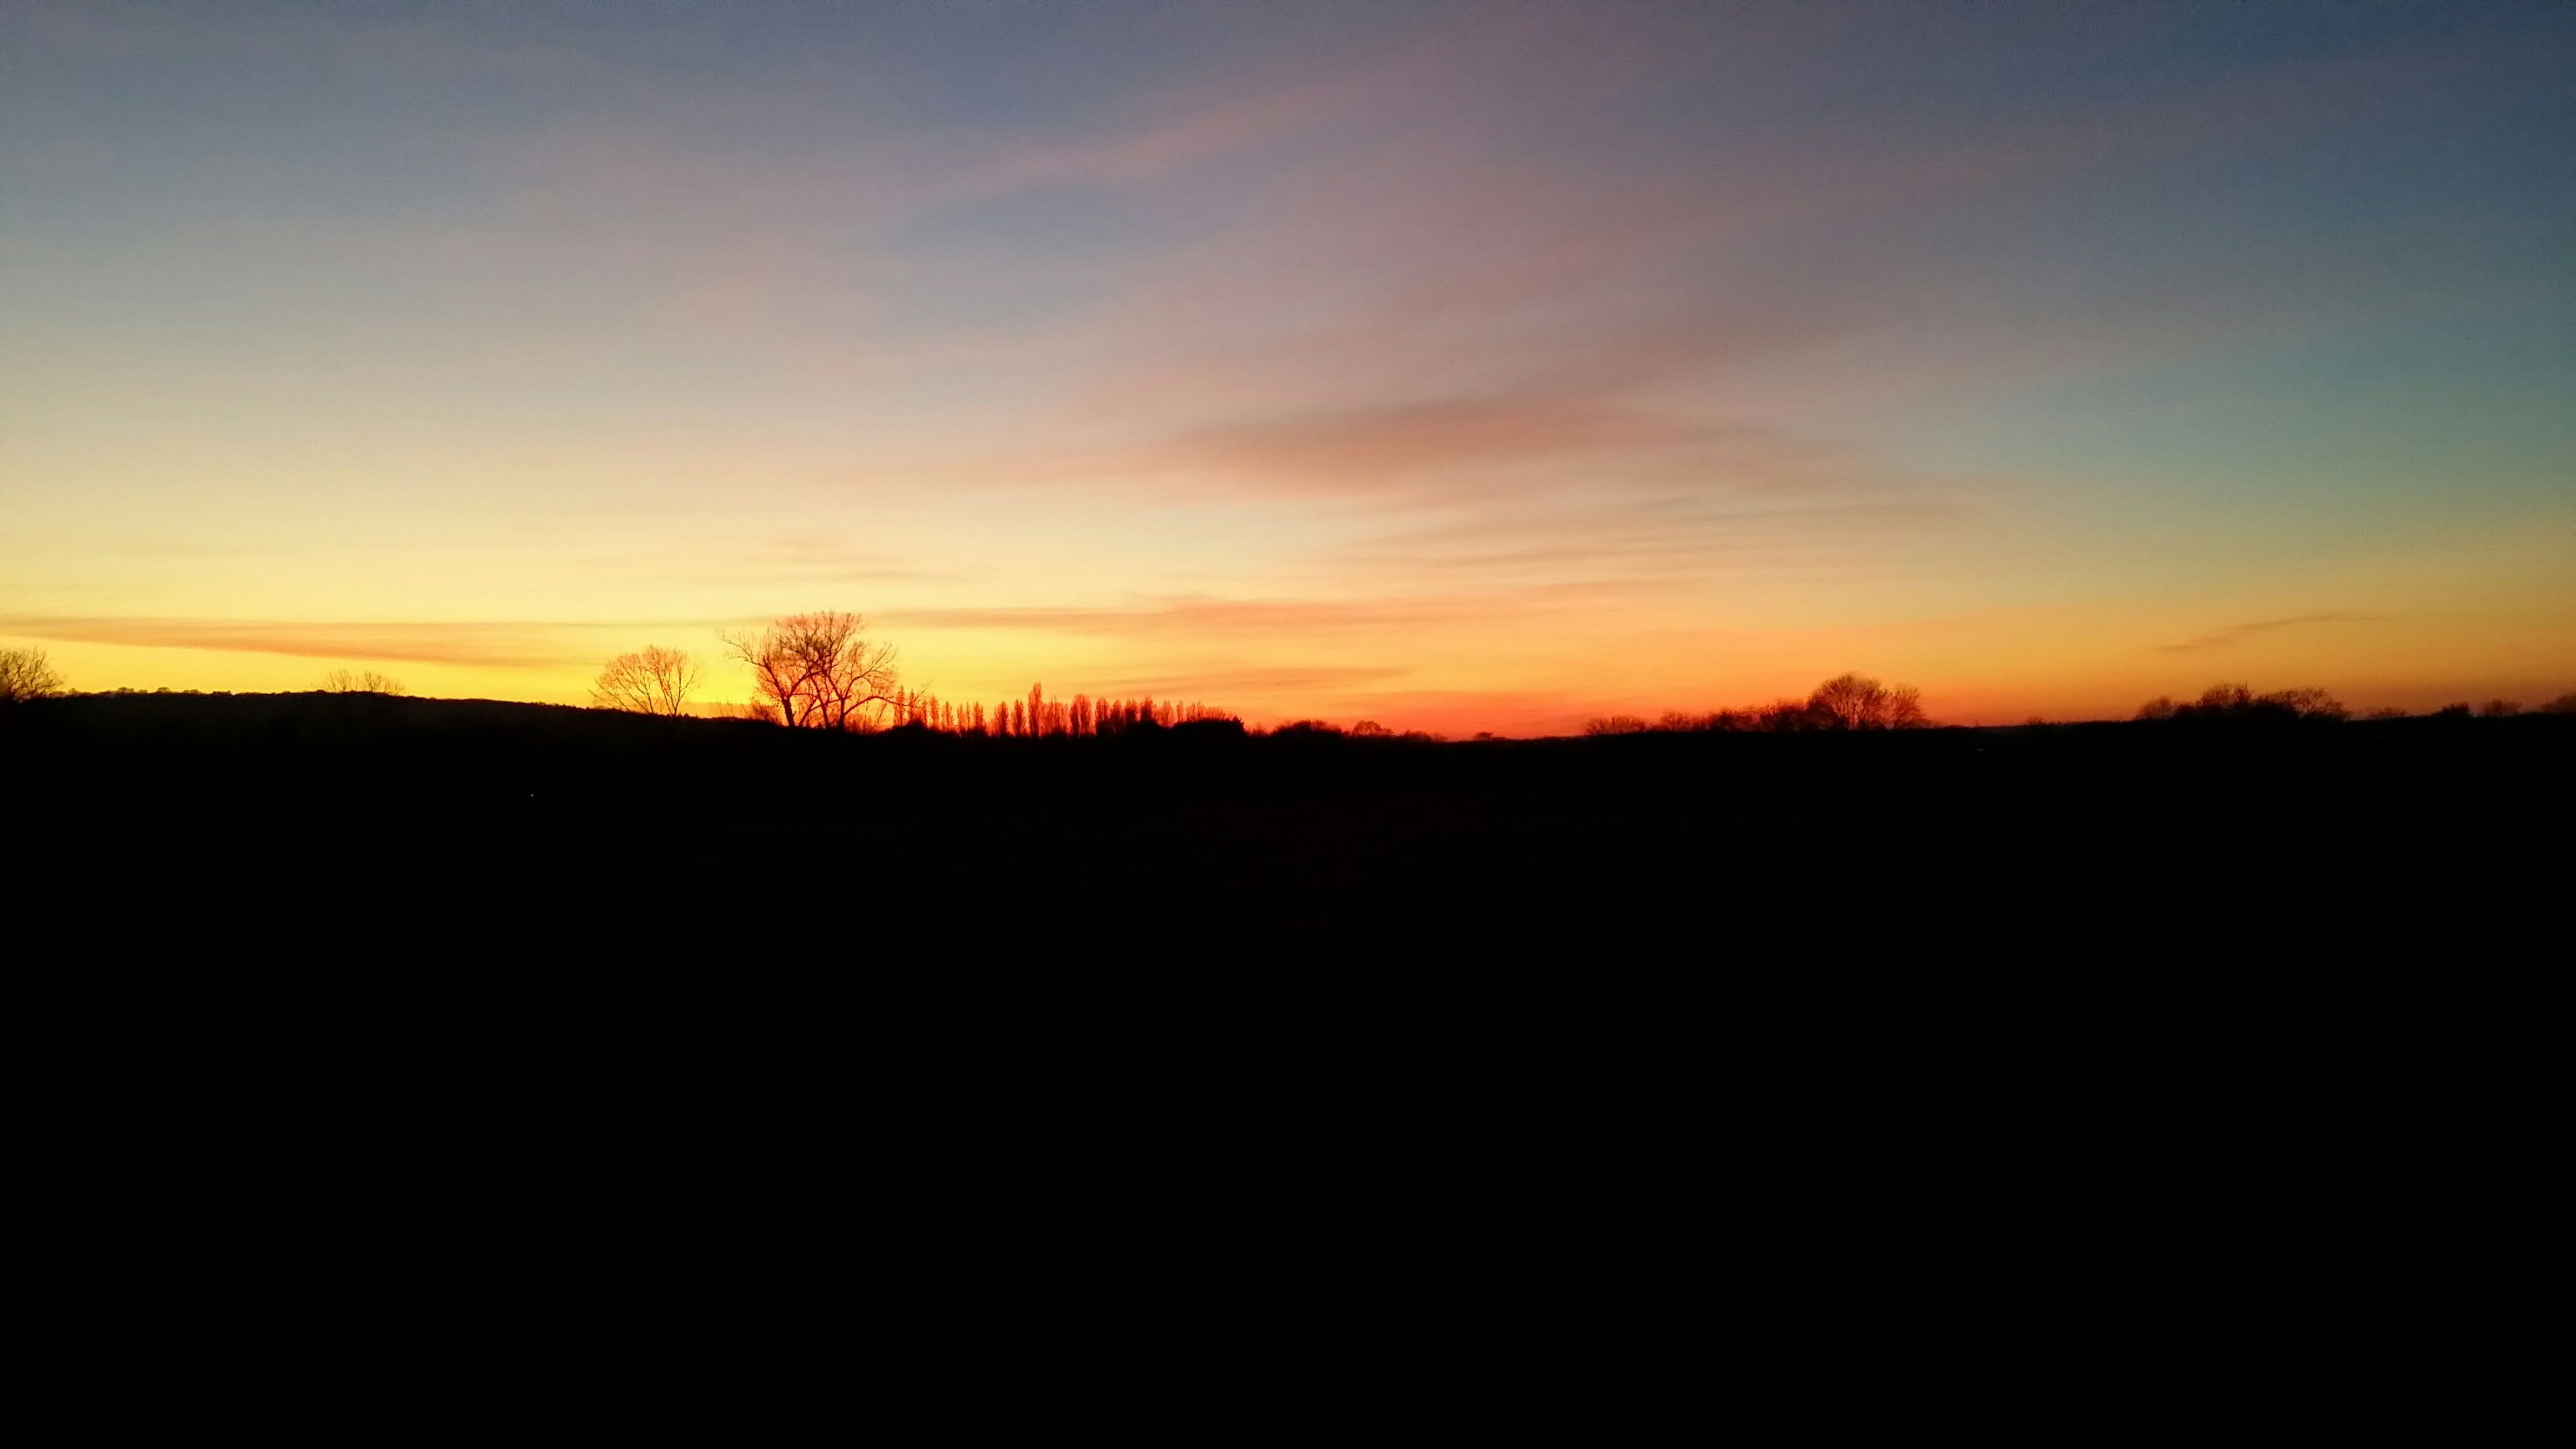 sunset, silhouette, tranquil scene, scenics, tranquility, beauty in nature, orange color, copy space, landscape, sky, nature, idyllic, dark, outline, outdoors, no people, tree, field, dusk, majestic